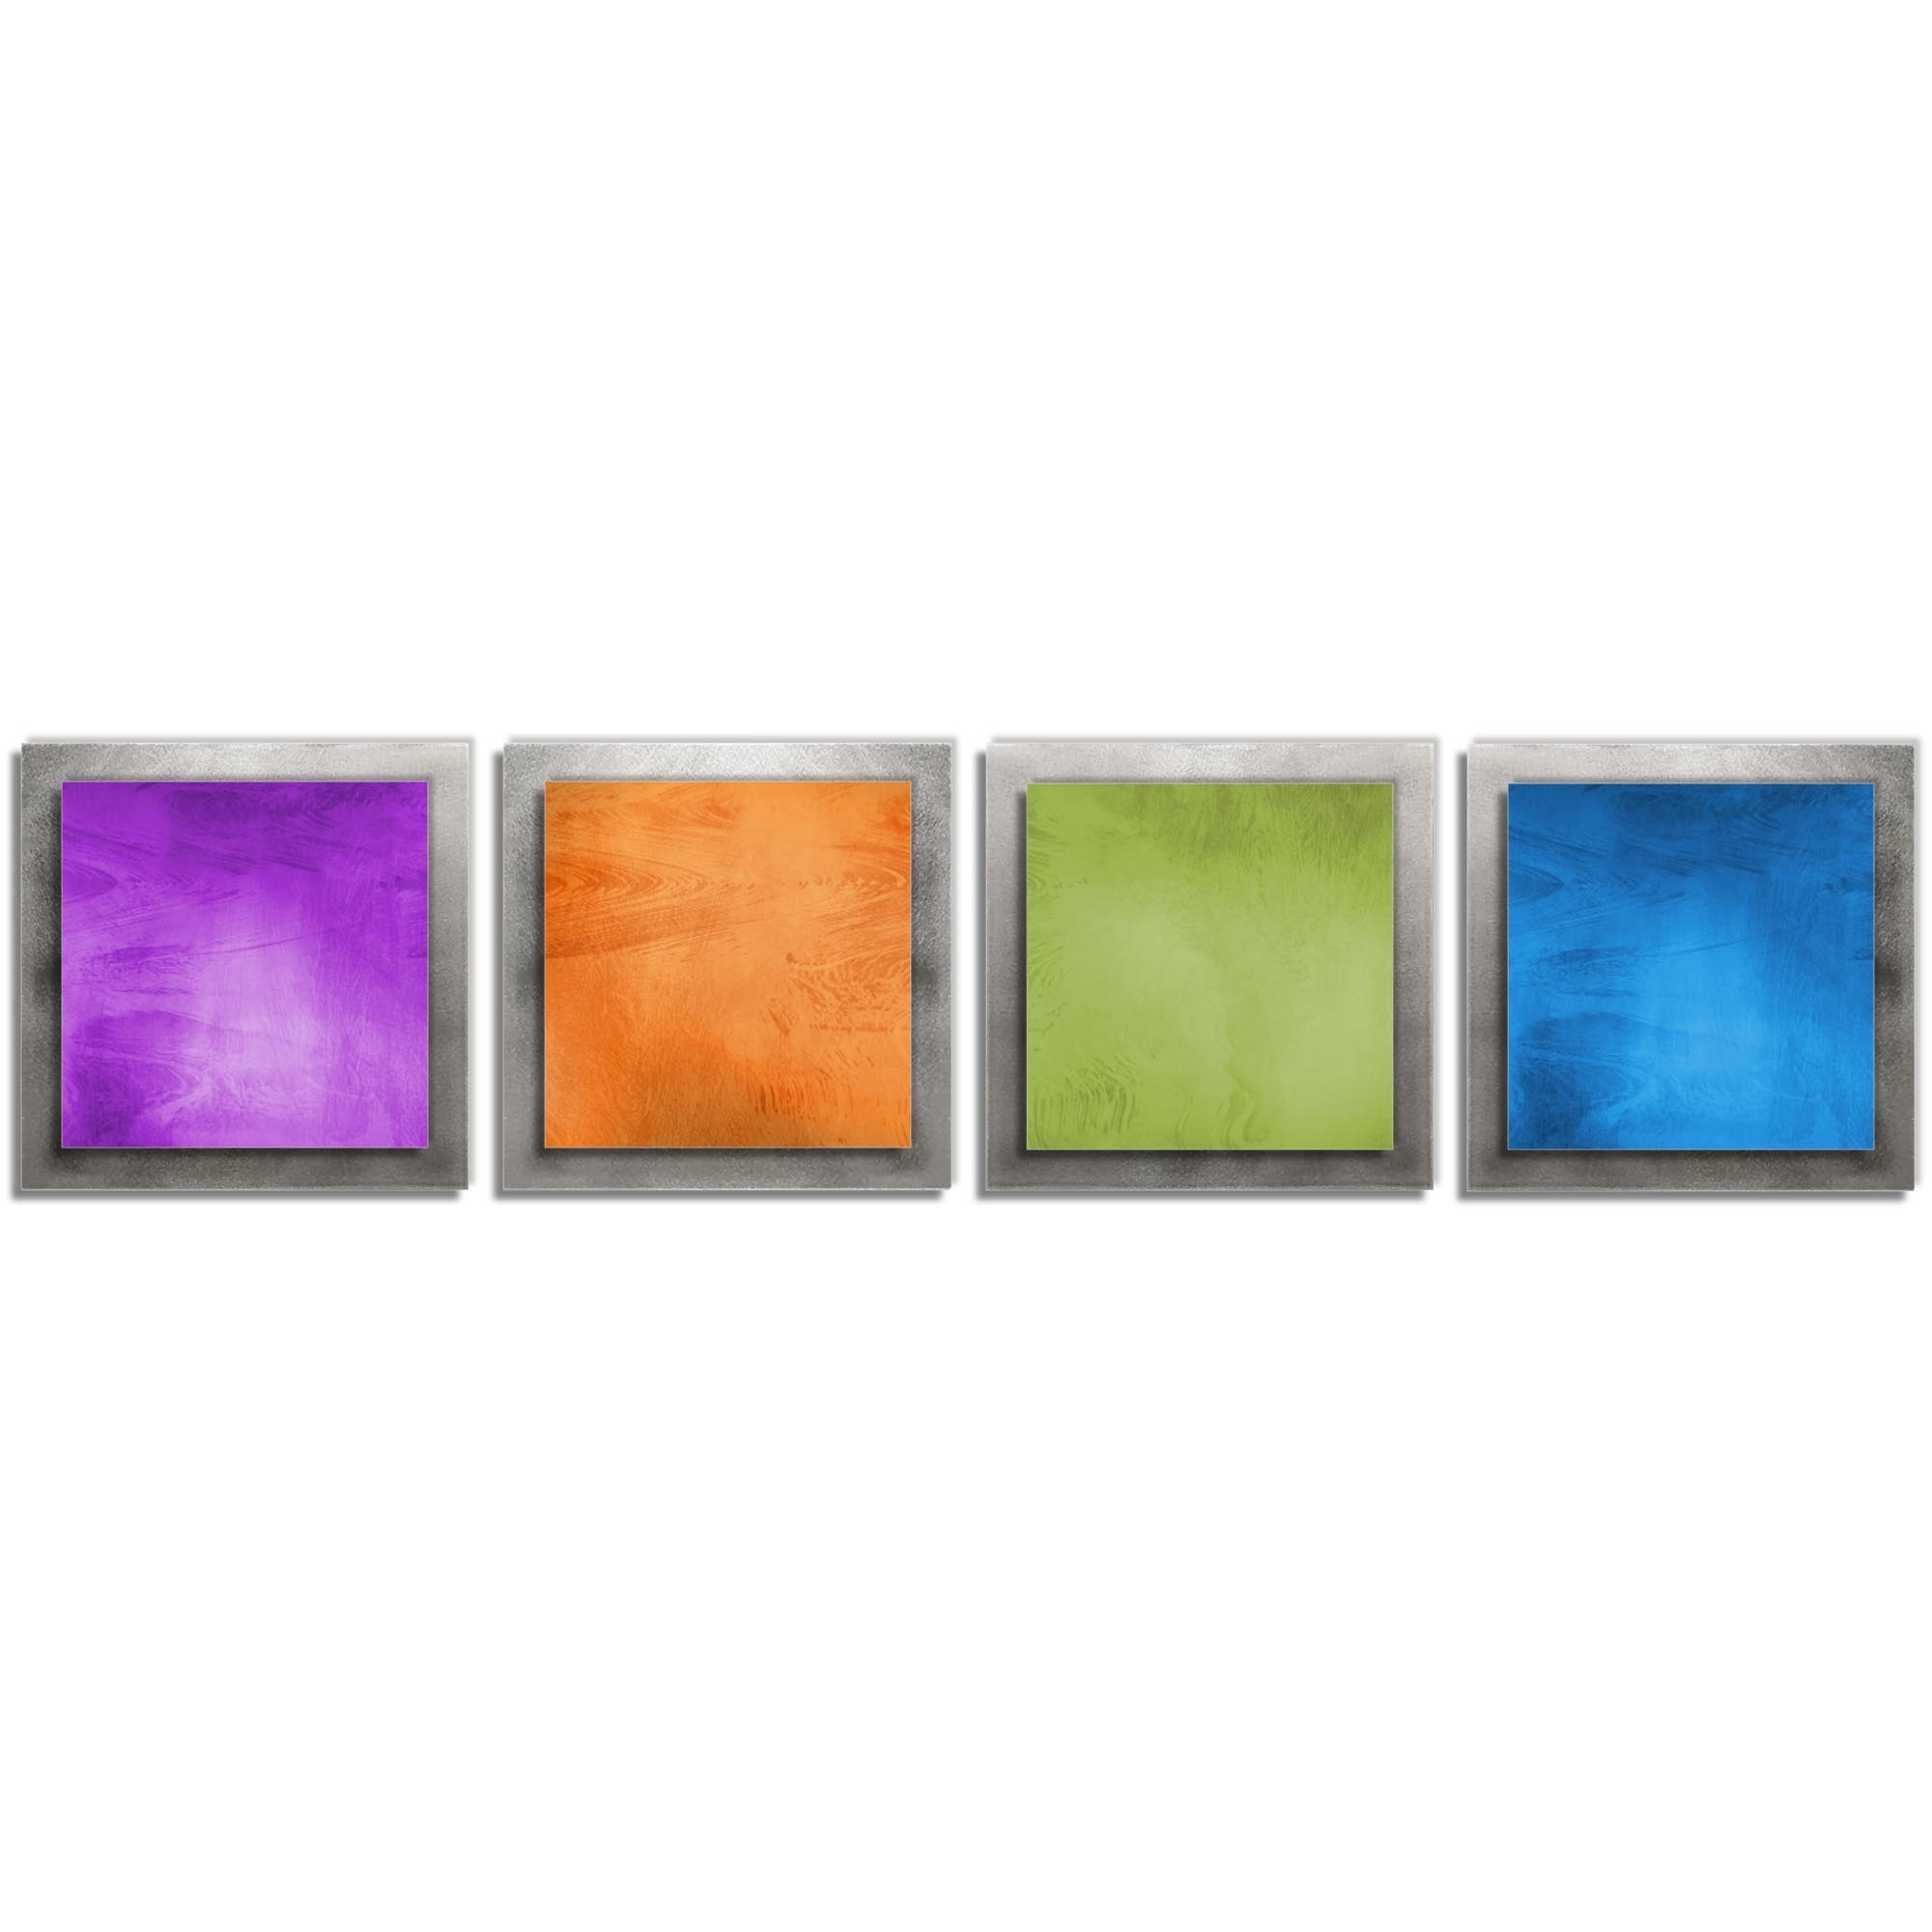 'Seasonal Essence' - Hand-Crafted Fine Metal Art - Modern Abstract Artisan Grind Patterns and Beveled Edges. Safe for Indoor and Outdoor use